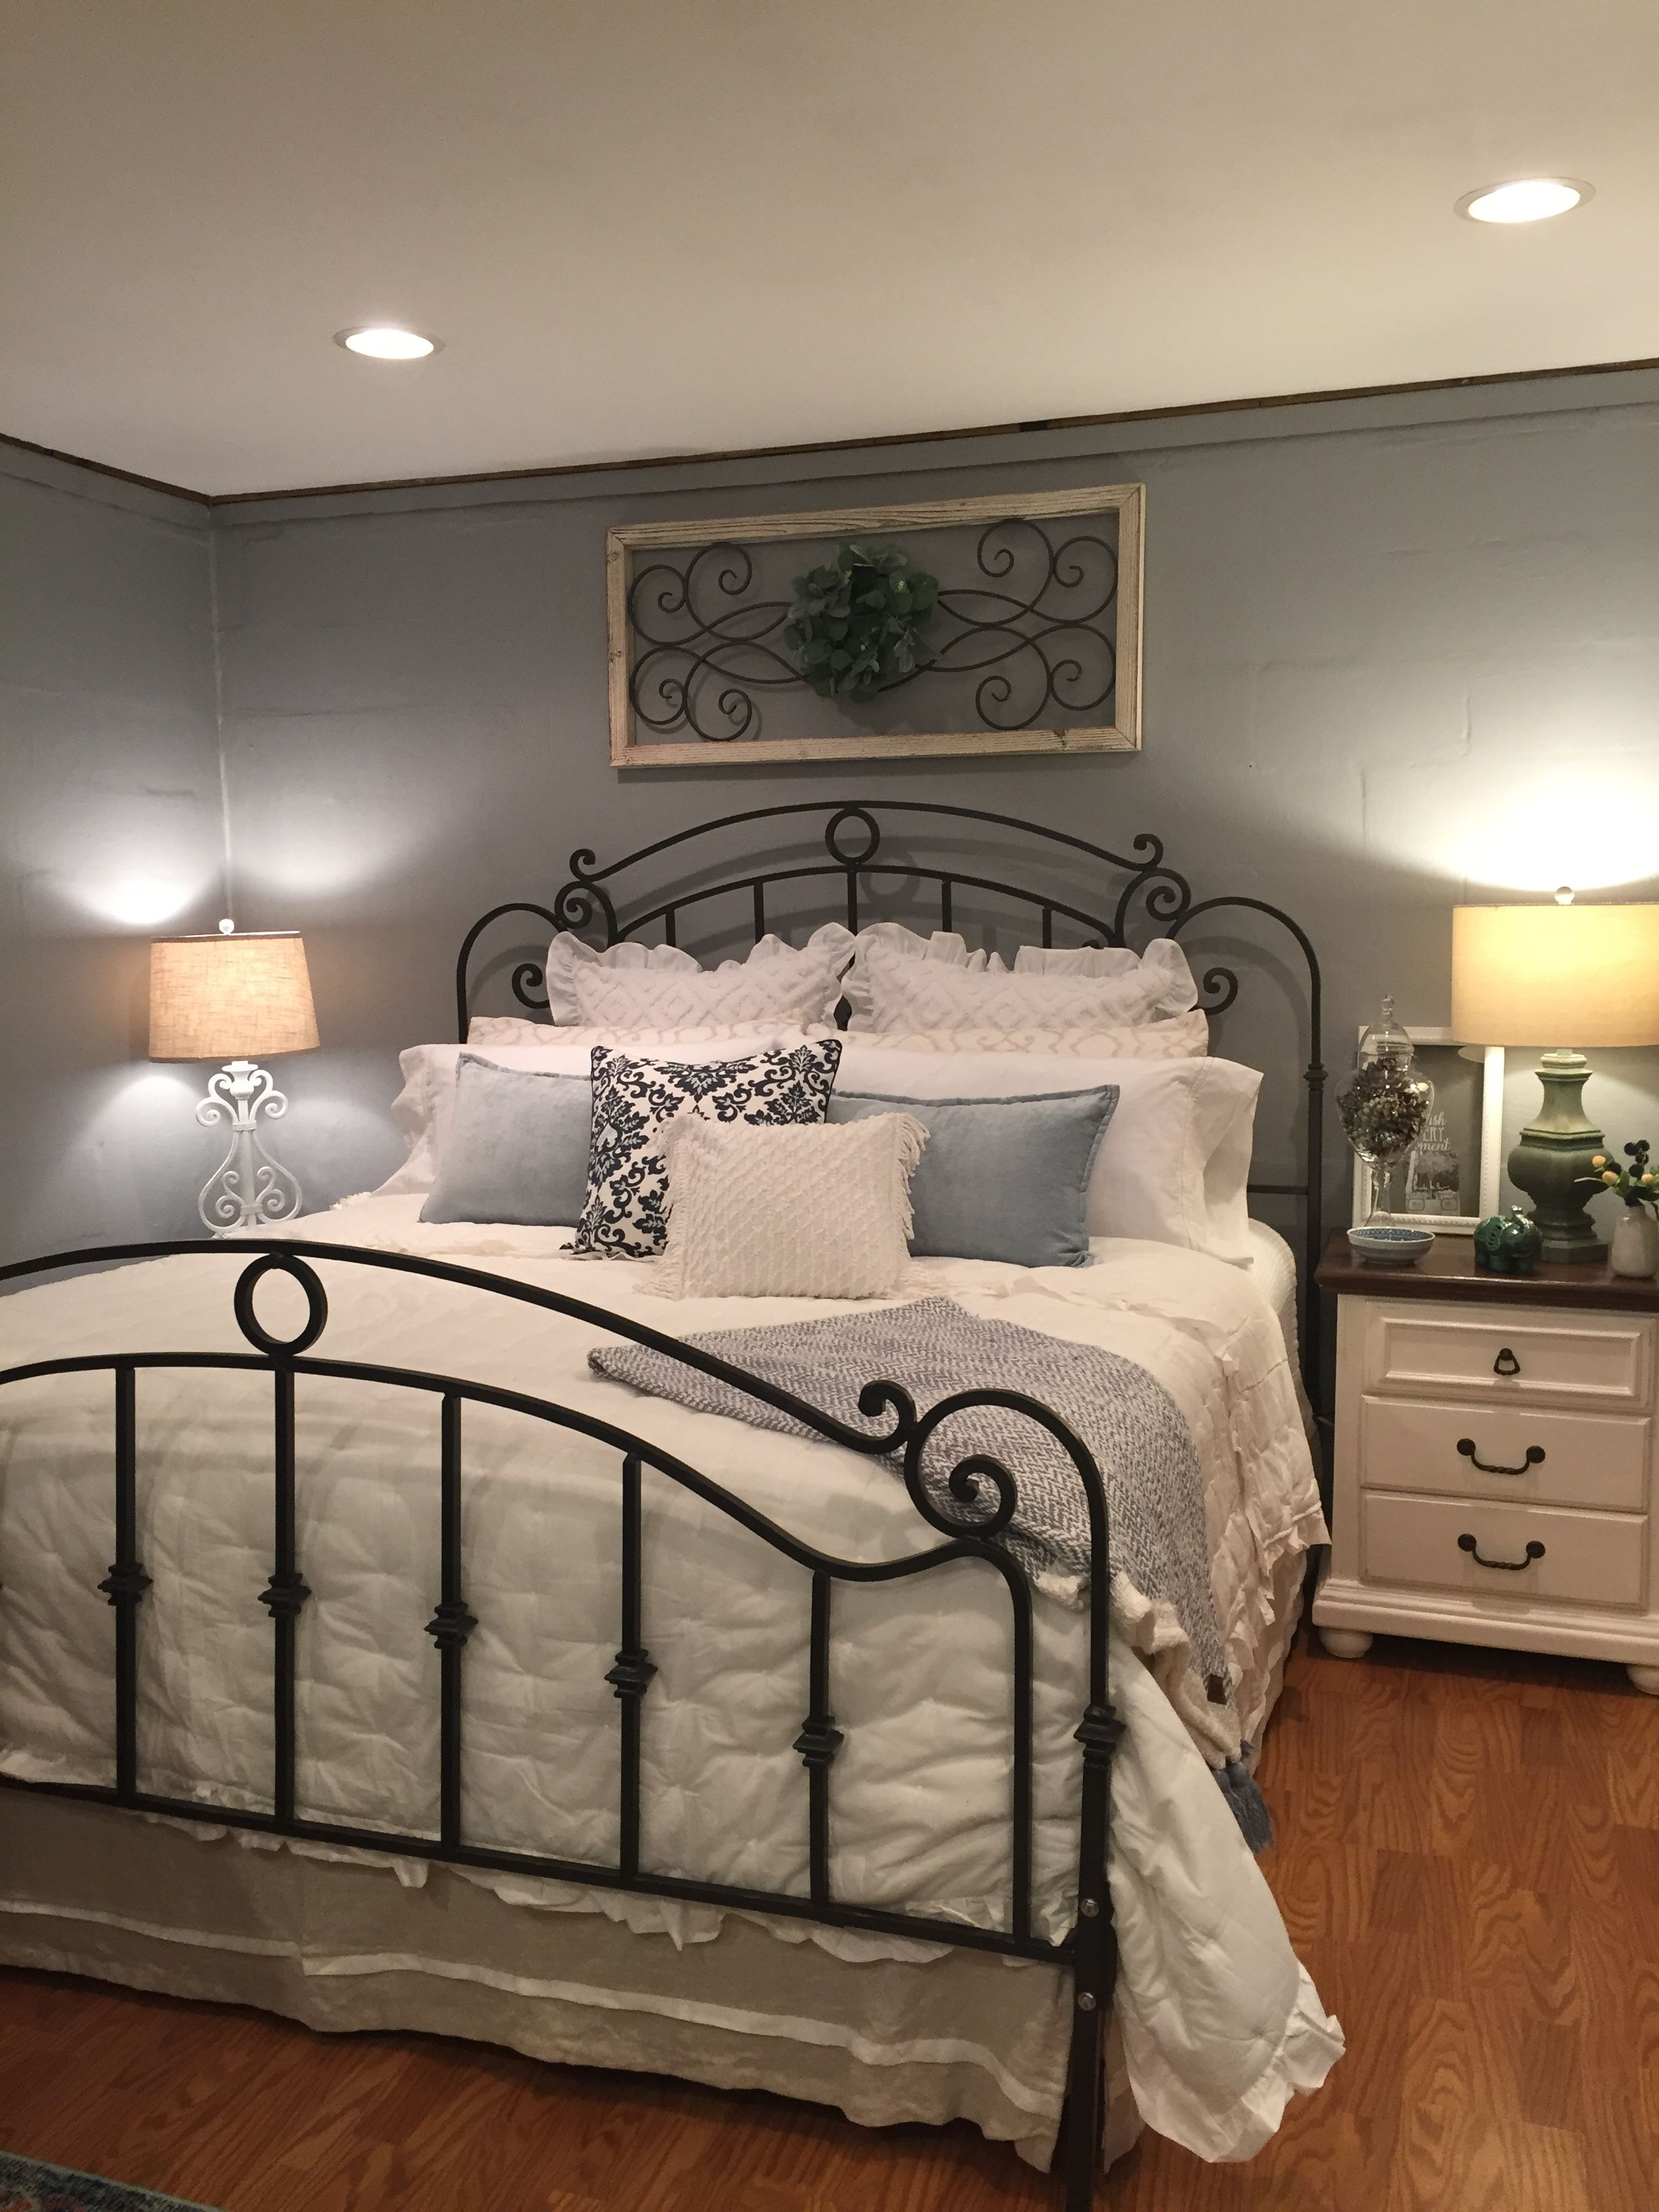 Romantic Bedroom Blue White In 2020 White Iron Beds Wrought Iron Beds Wrought Iron Furniture